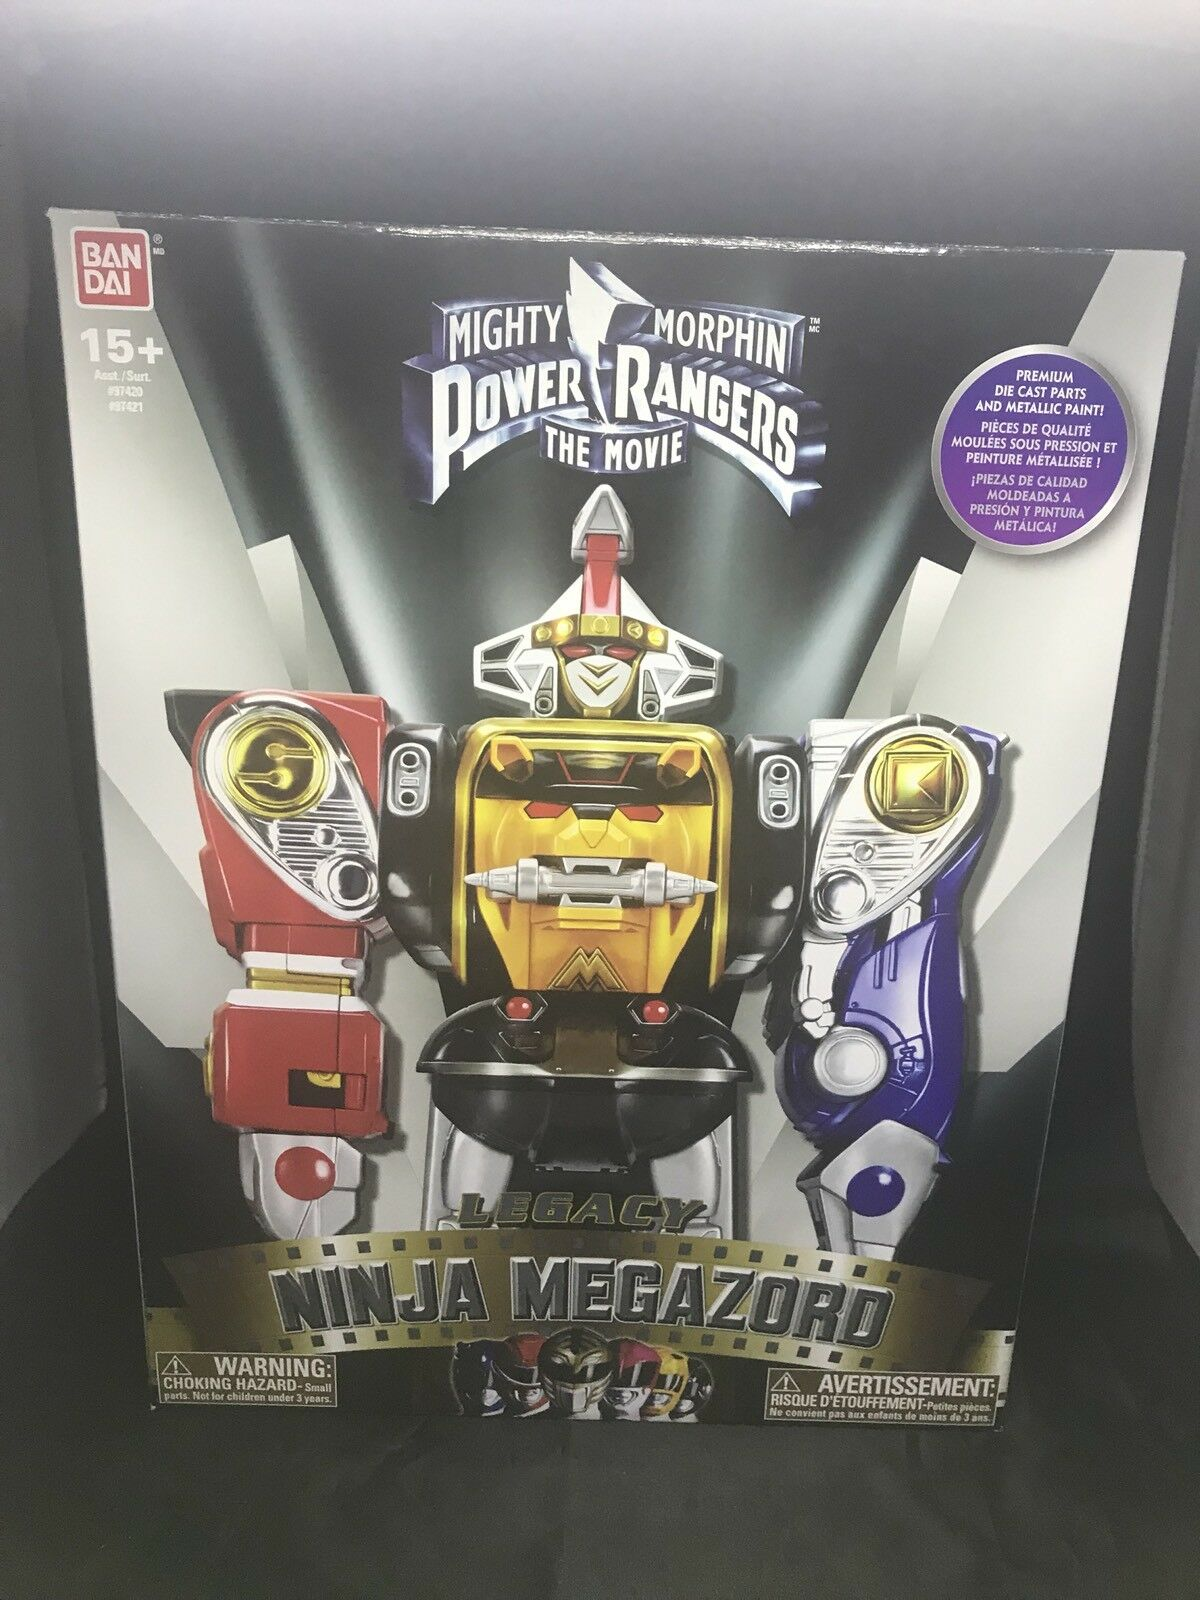 Legacy Ninja Megazord Mighty Morphin Power Rangers Movie Figure  ouverte, mais grande  marque célèbre